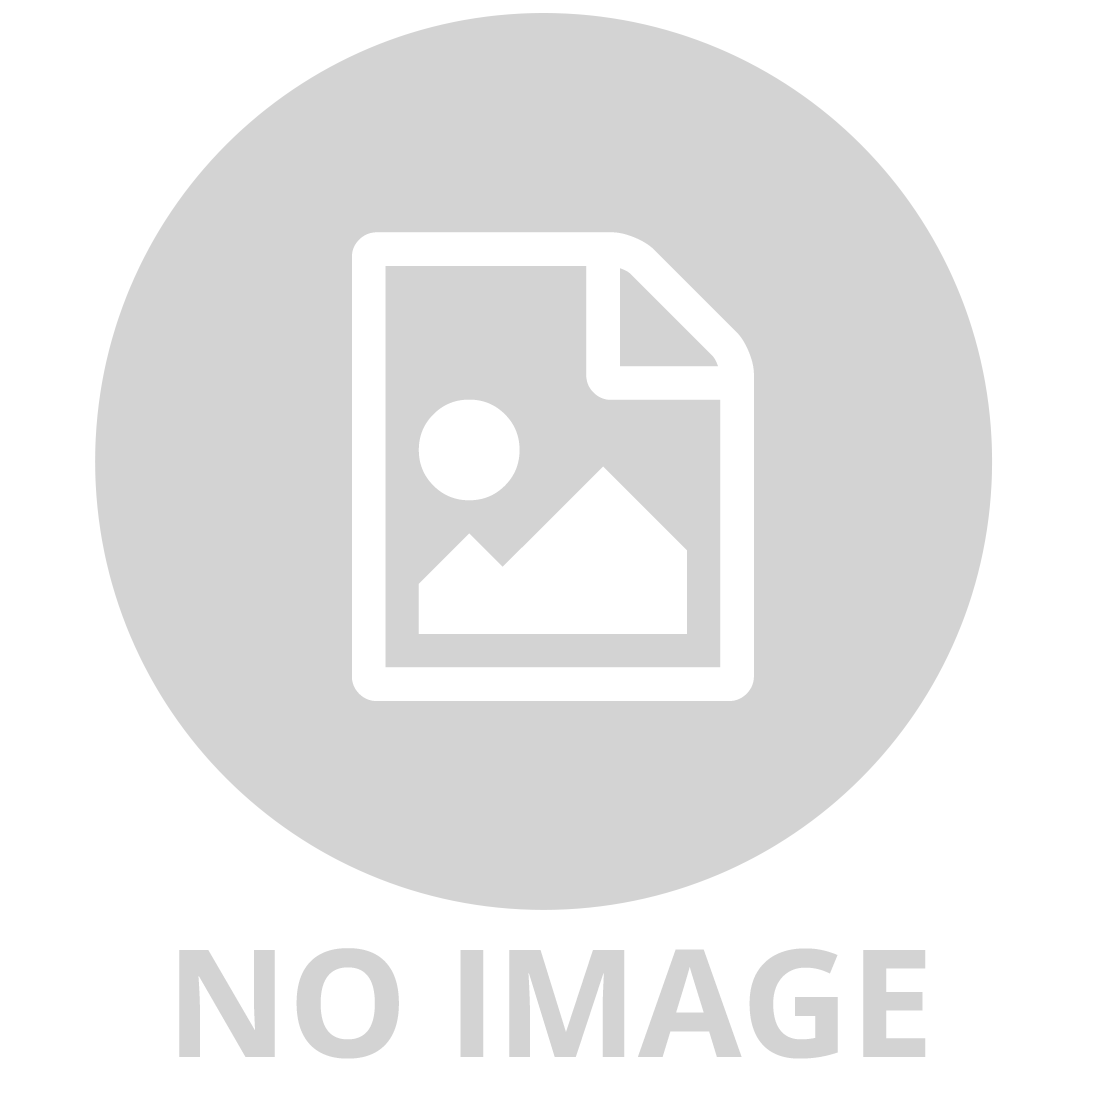 WALTHERS N GAUGE DIAMOND COAL CORPORATION